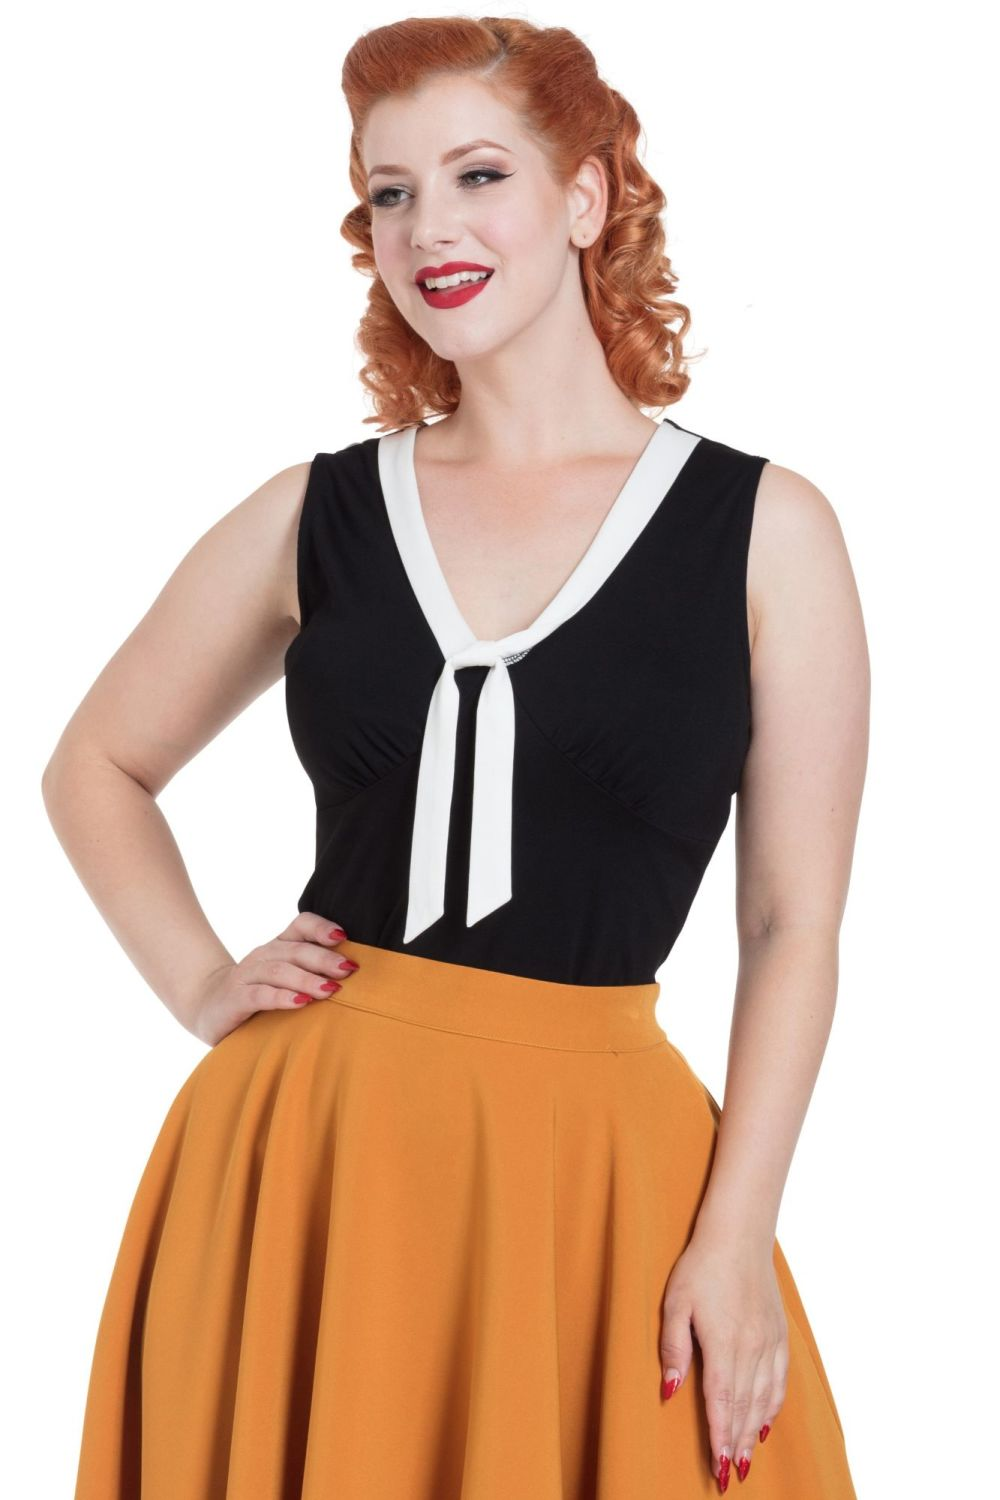 Voodoo Vixen Vintage Style Nellie Top with Contrast Tie - Black with White